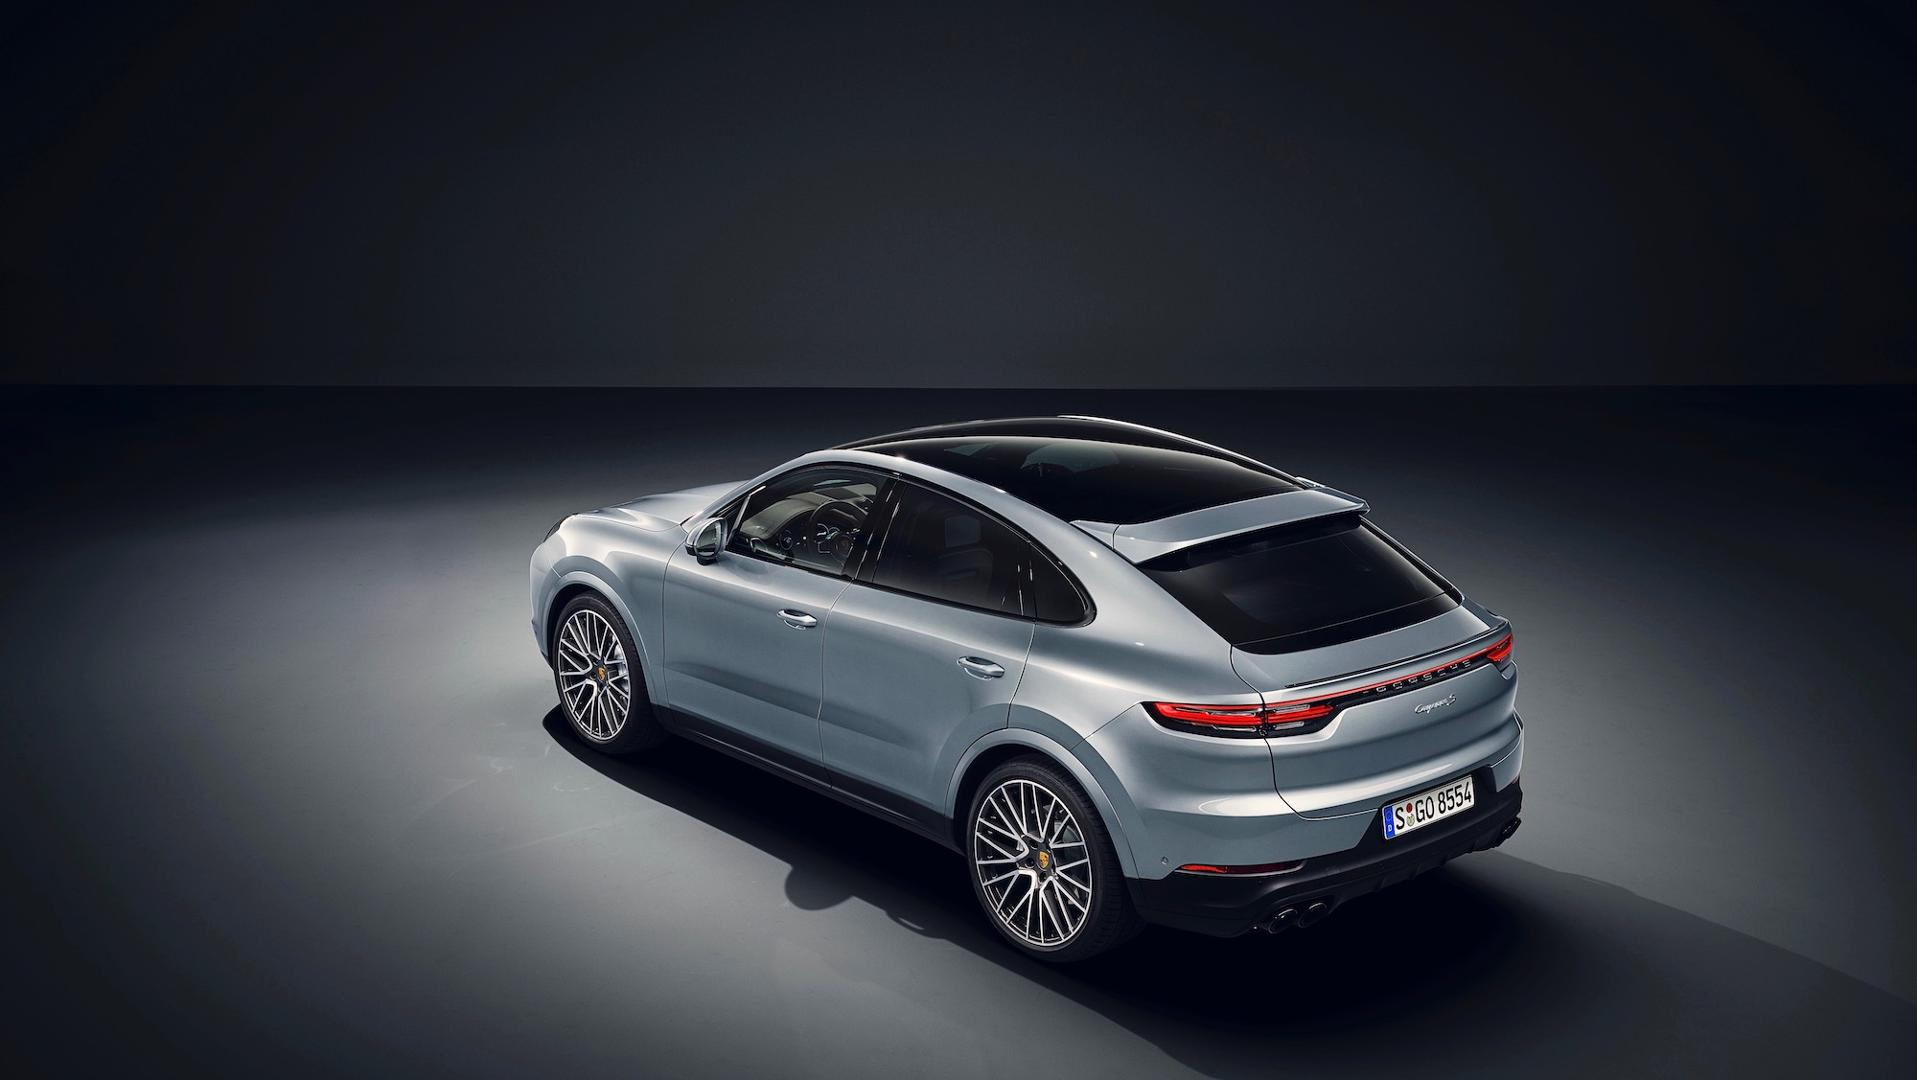 2020 Porsche Cayenne S Coupe: 3 Things You Should Know